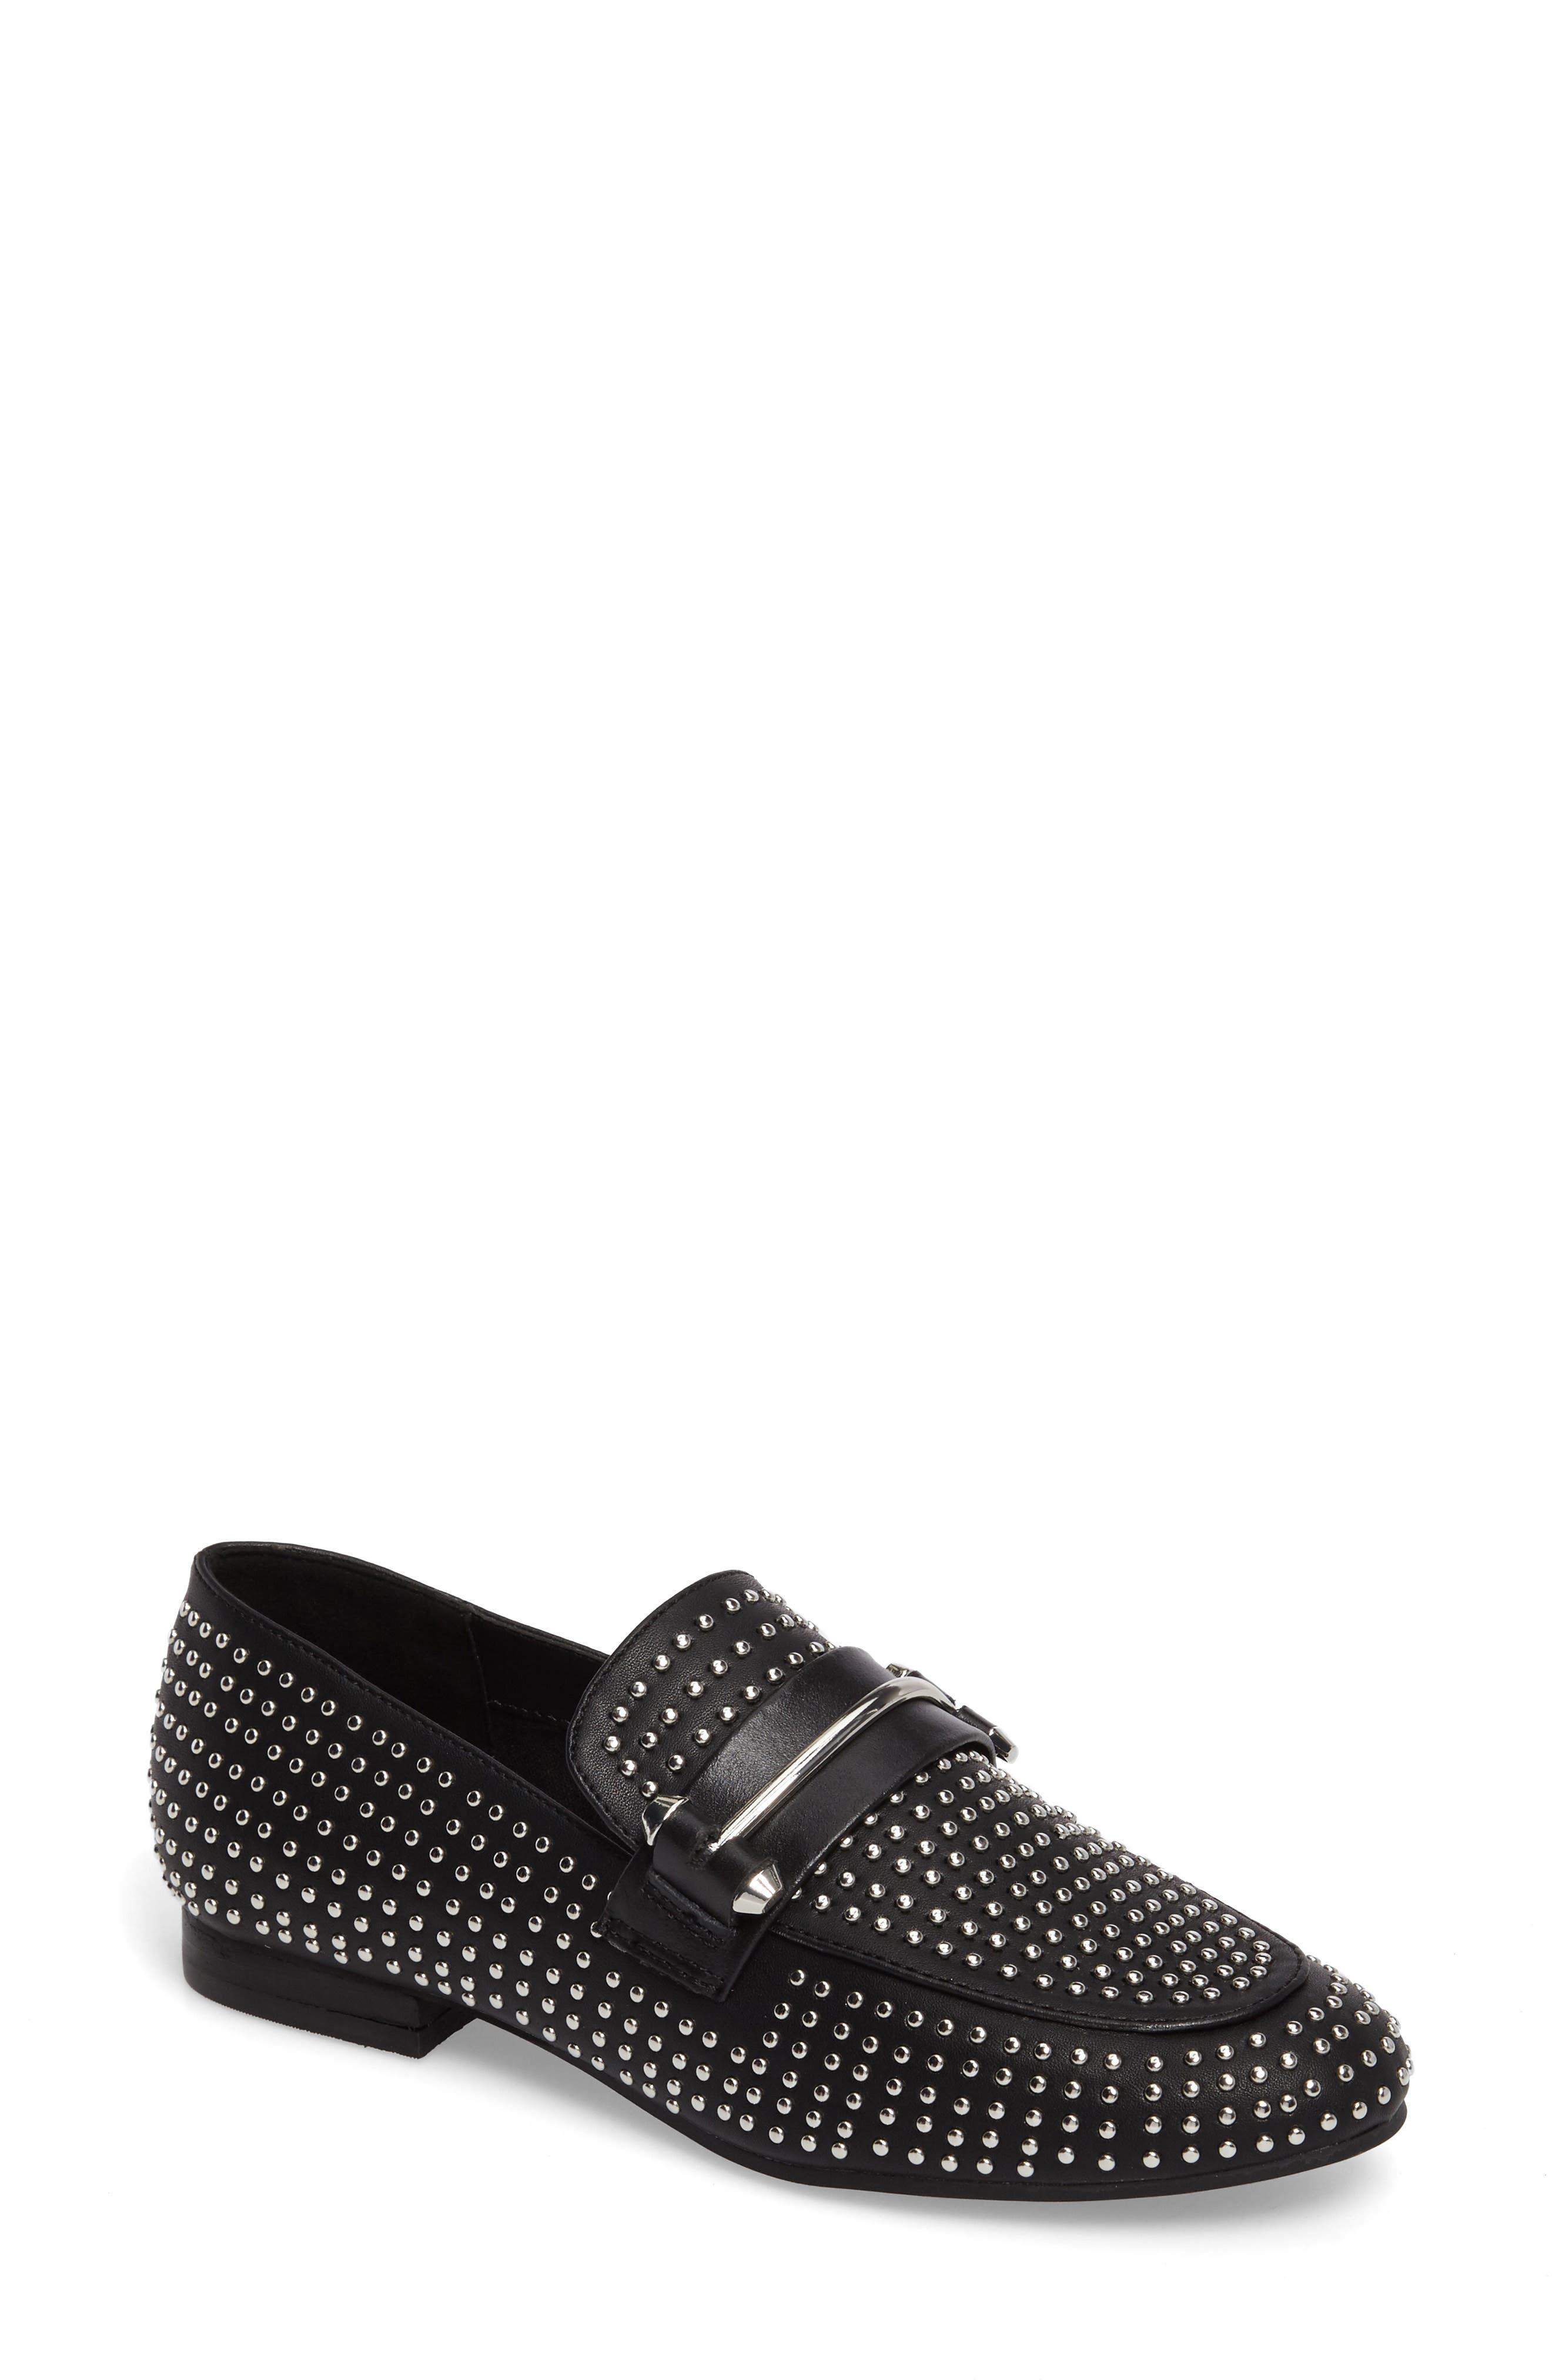 Kast Studded Loafer,                         Main,                         color, 001